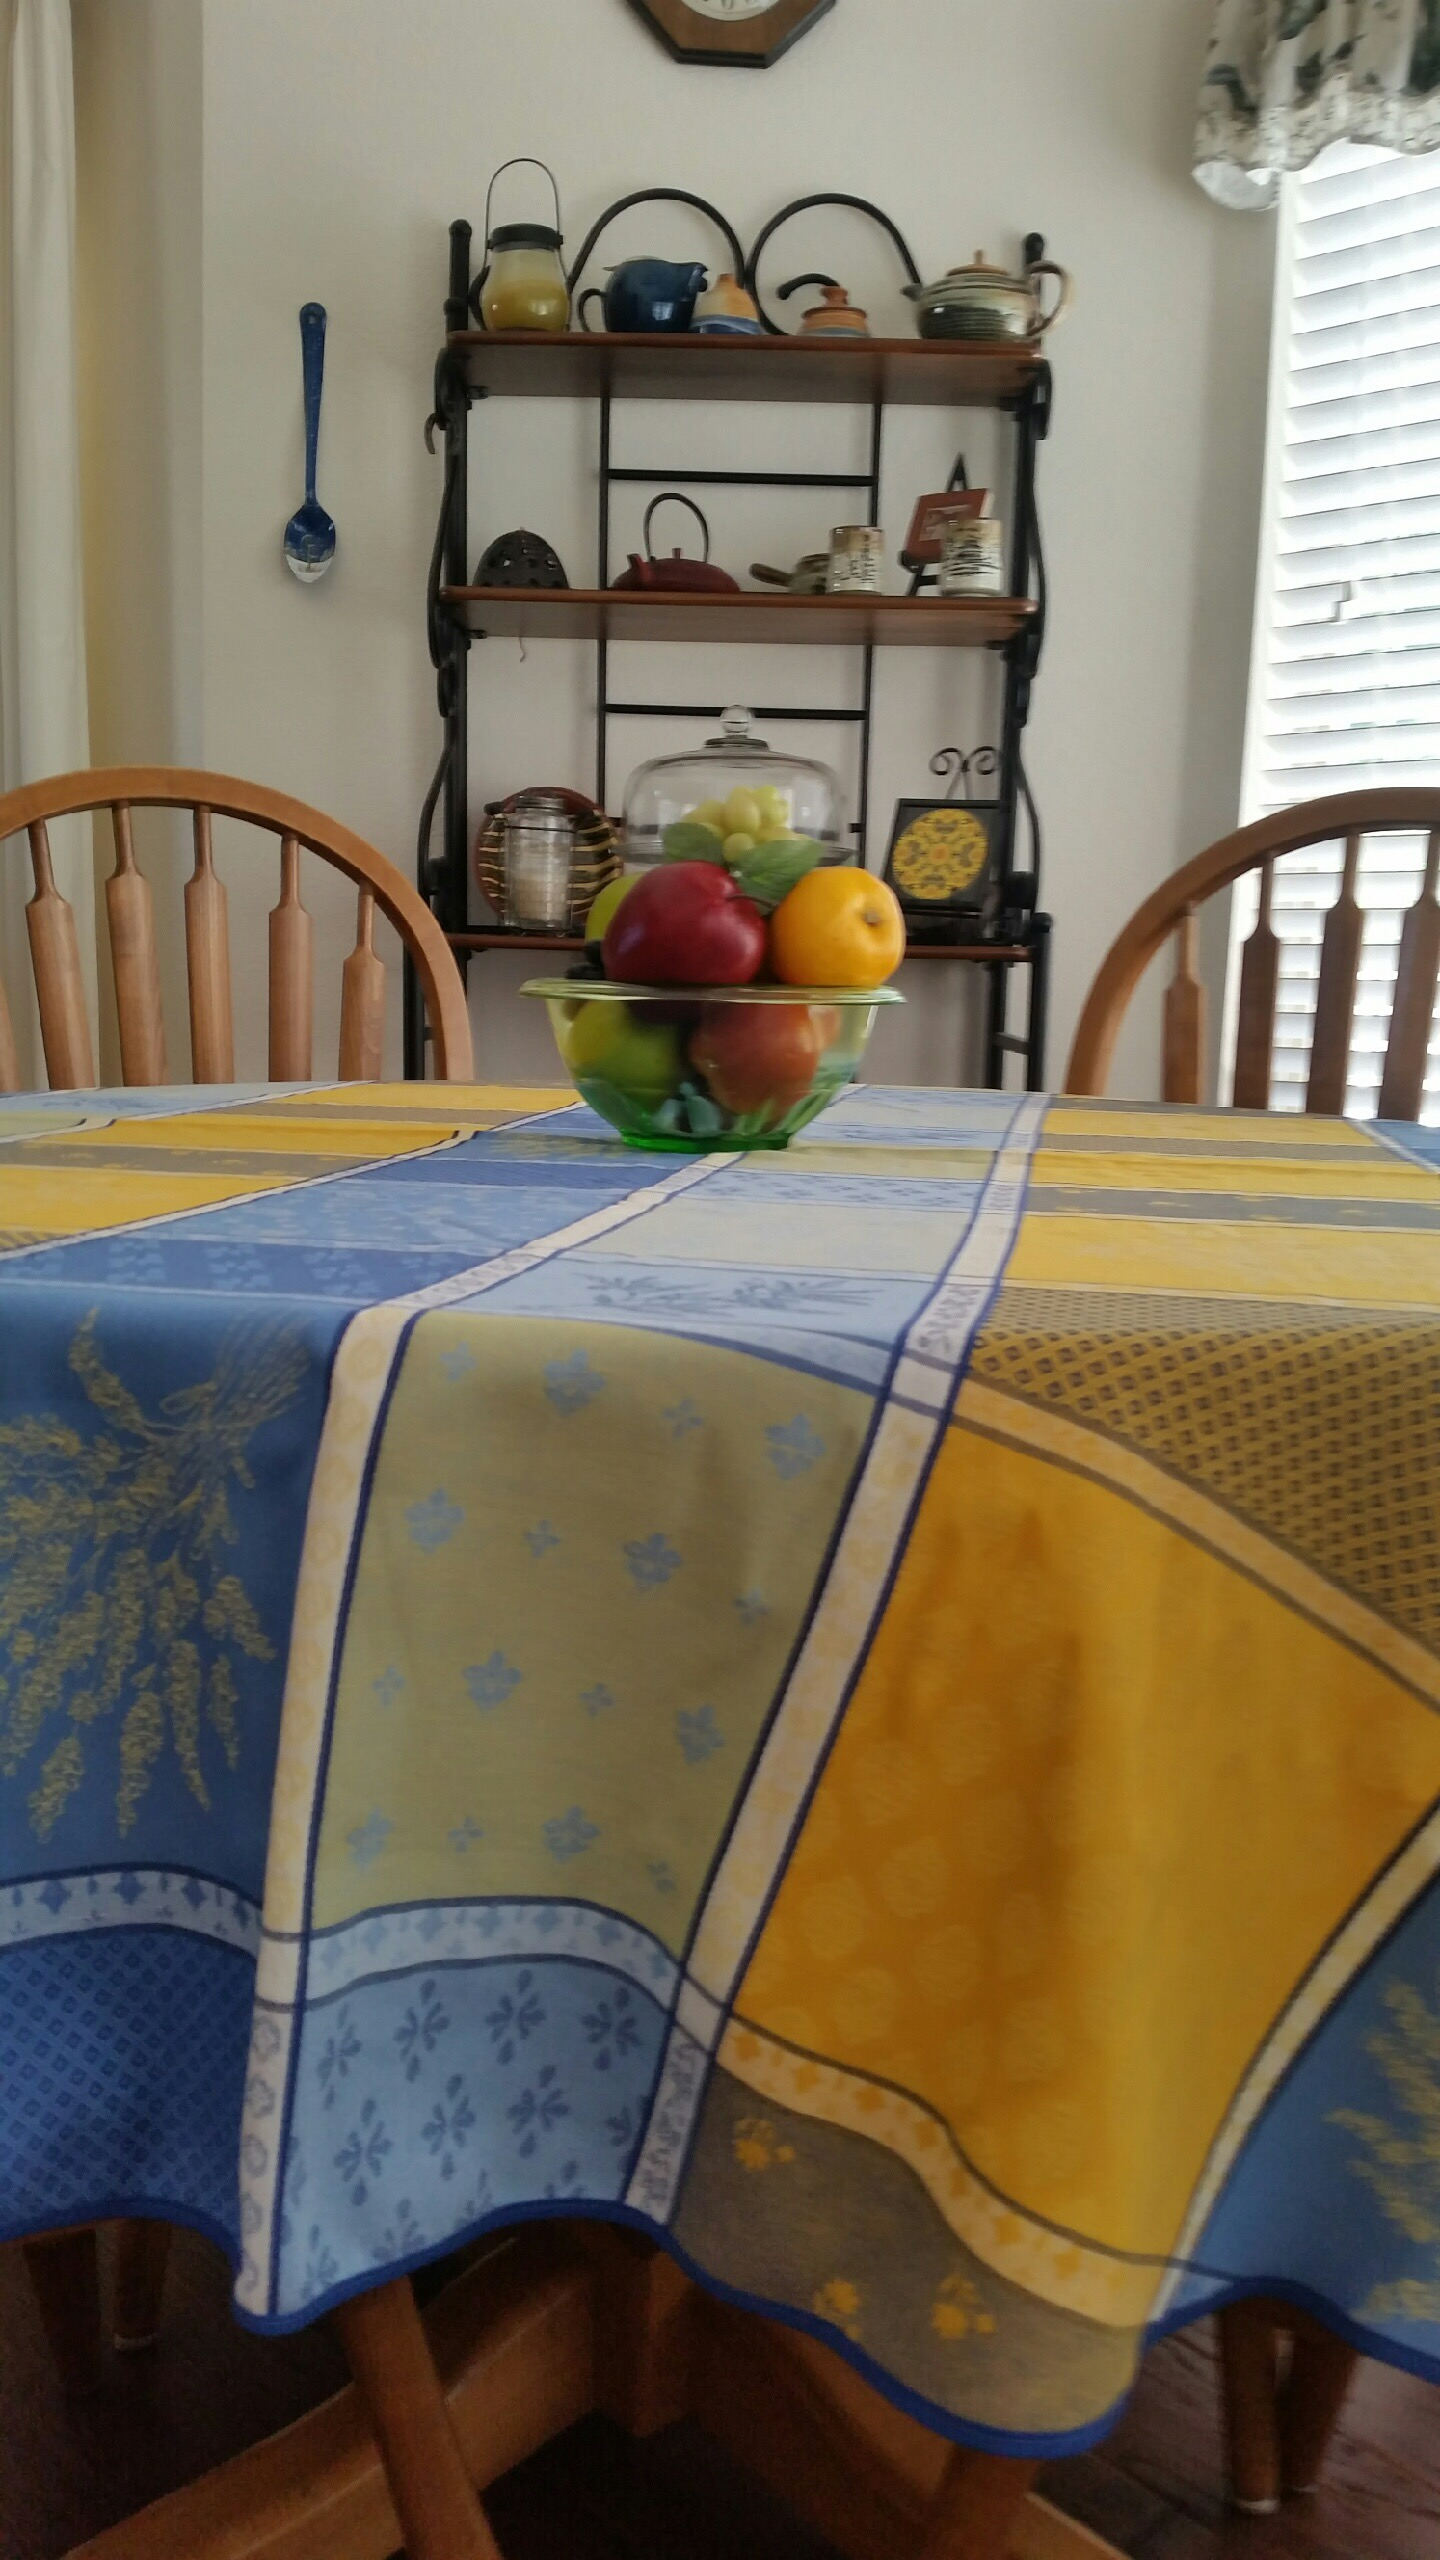 Lourmarin Jacquard Tablecloth